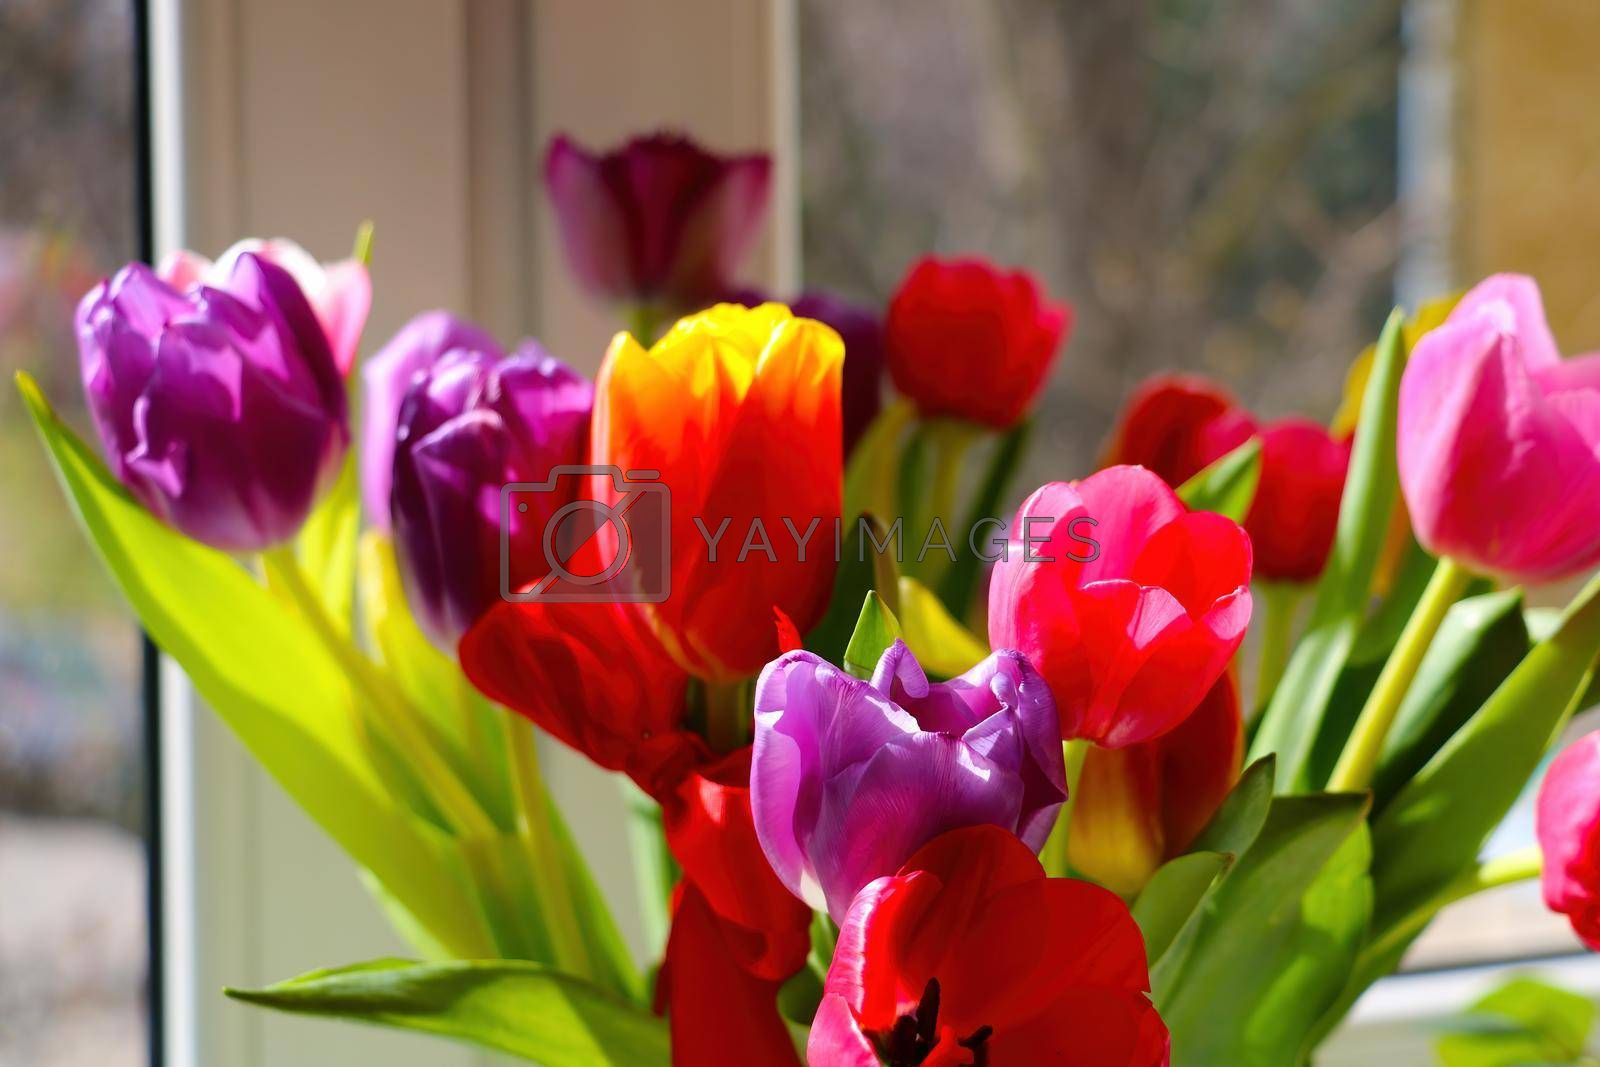 Royalty free image of There is a bouquet of fragrant blooming tulips in a vase on the windowsill. by kip02kas